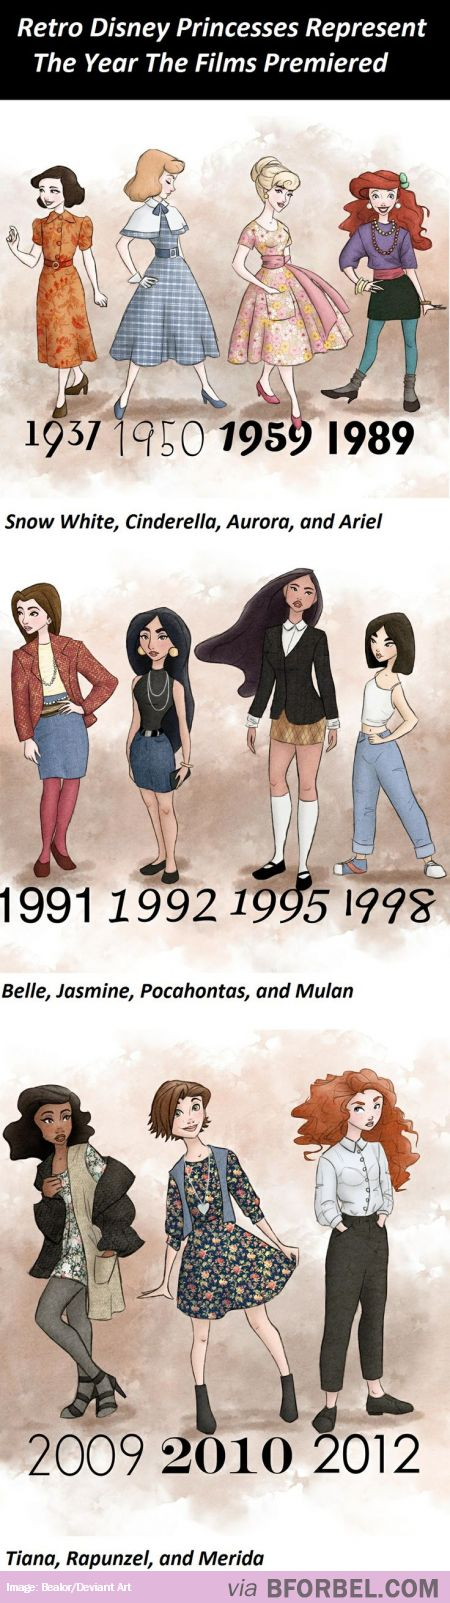 11 Retro Disney Princesses Dressed Up To Represent The Year The Films Premièred! This is lovely,: